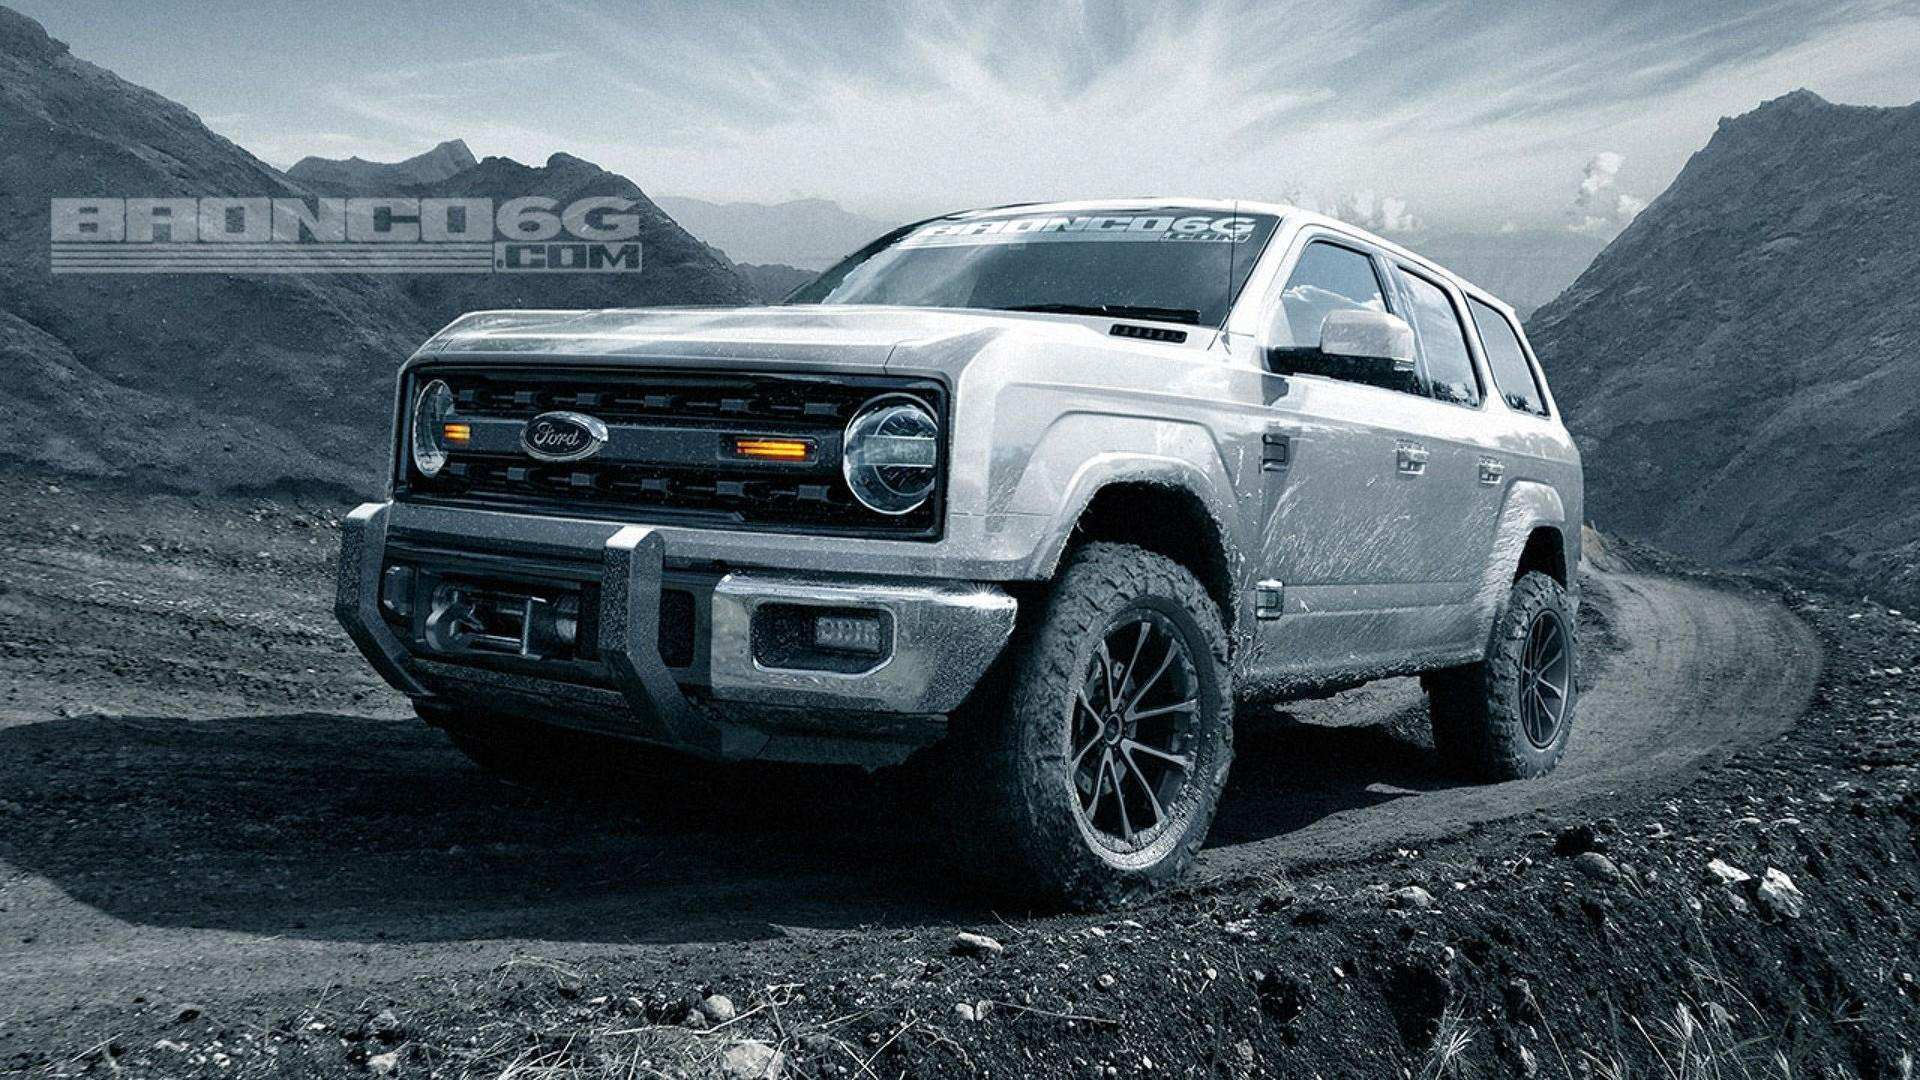 63 The Best Ford Bronco 2020 Engine New Concept